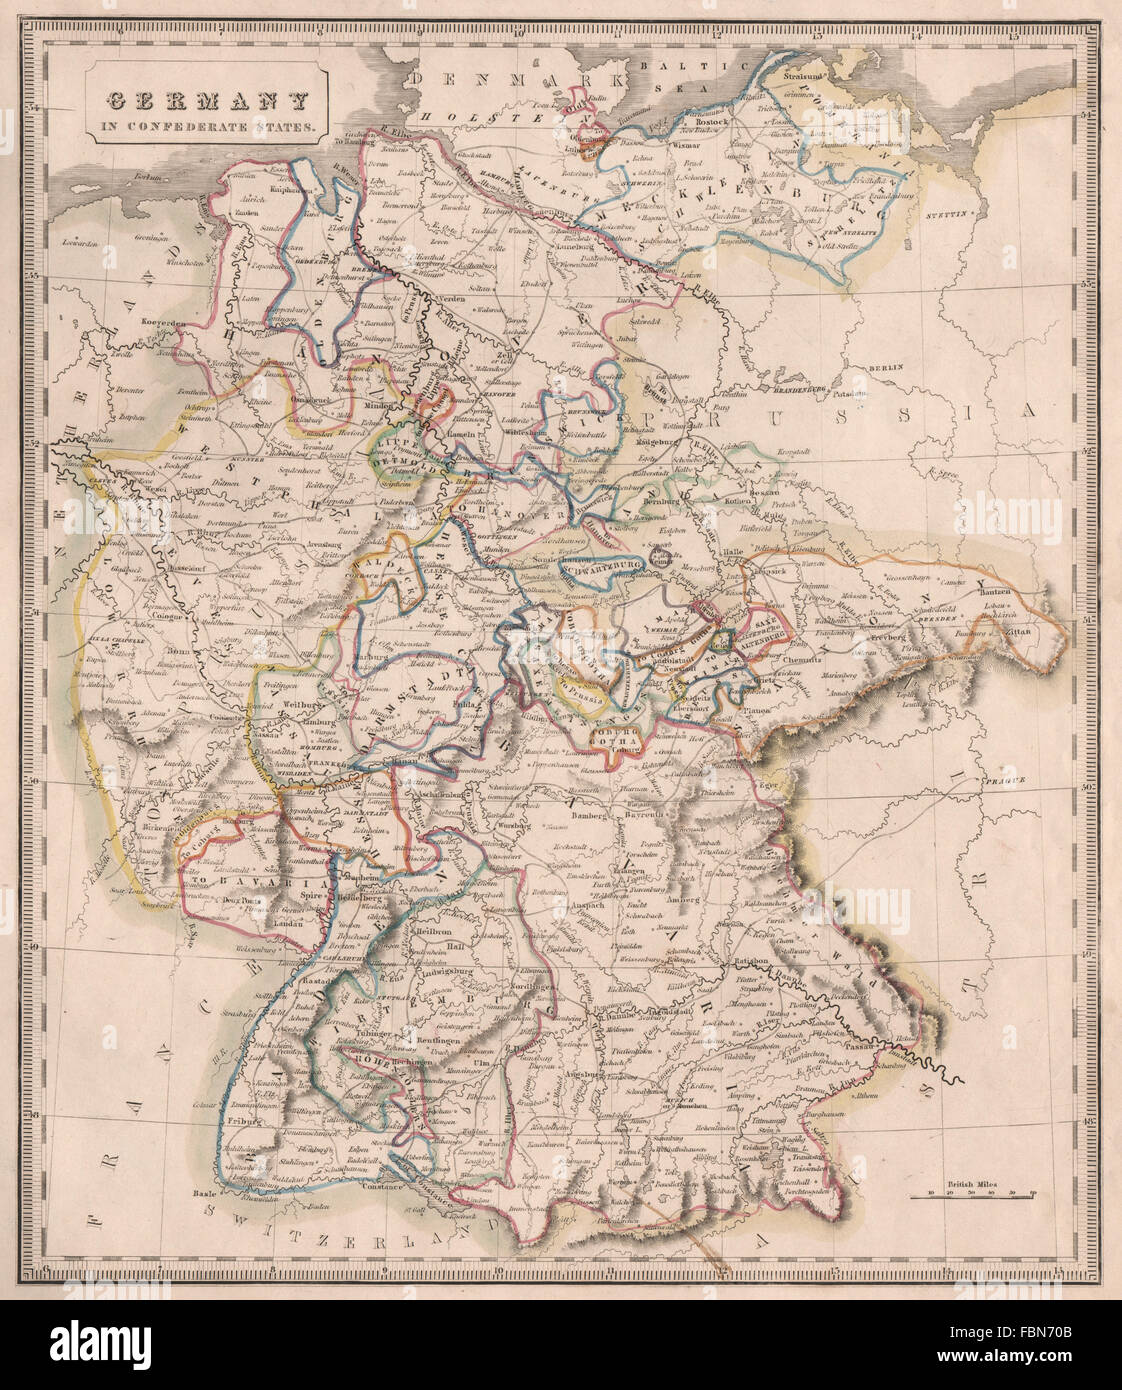 GERMANY IN CONFEDERATE STATES Rivers Bavaria Hanover C JOHNSON - Germany map in 1850